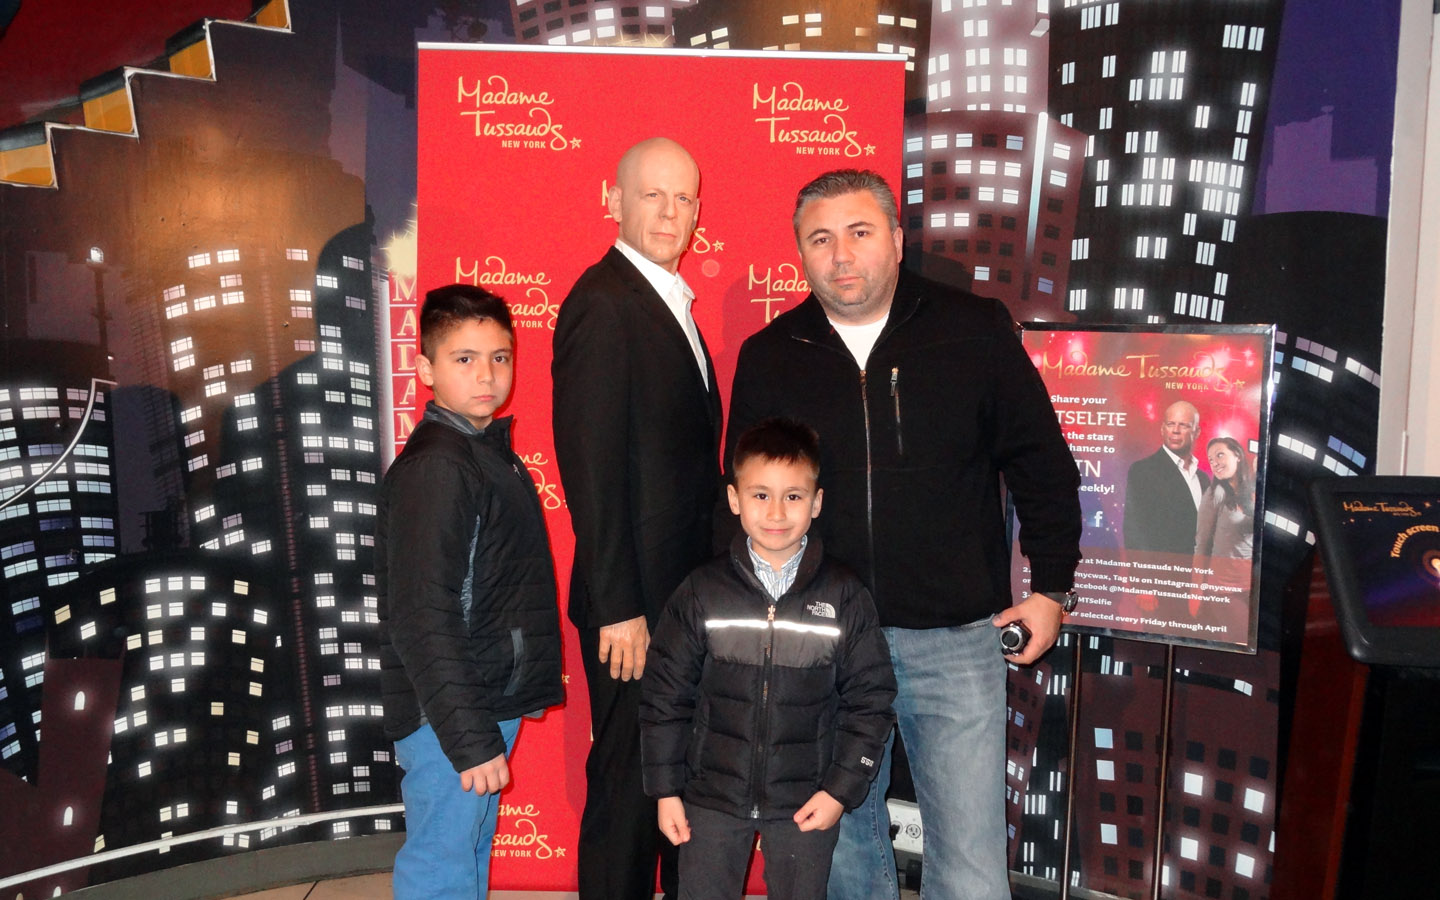 Bruce Willis, Madame Tussauds New York, USA 201